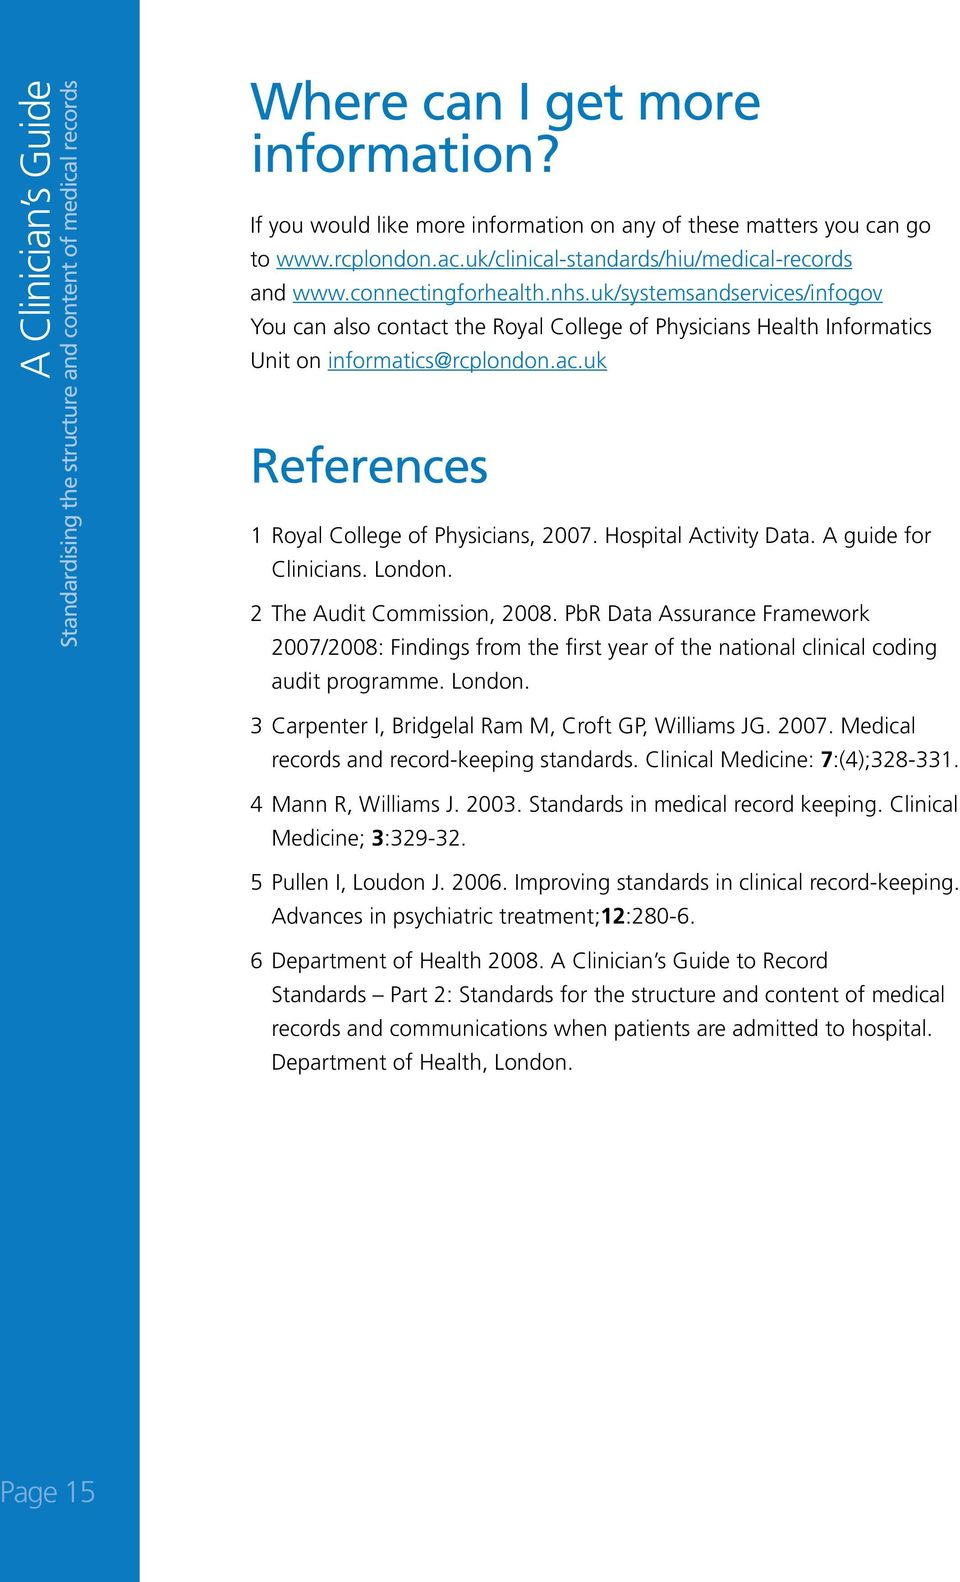 Hospital Activity Data. A guide for Clinicians. London. 2 The Audit Commission, 2008.